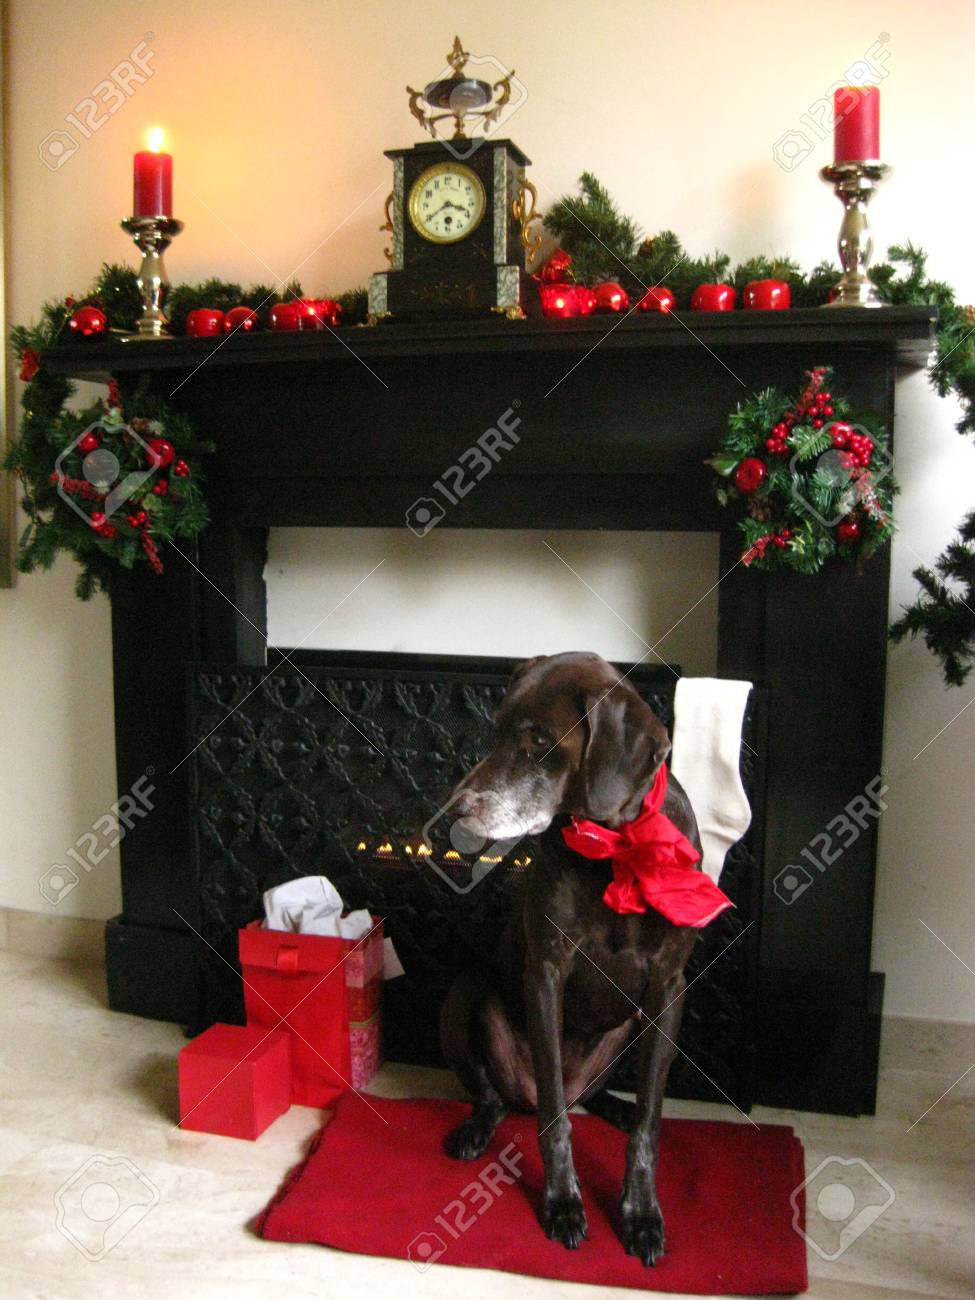 A Christmas fireplace Stock Photo - 3853733